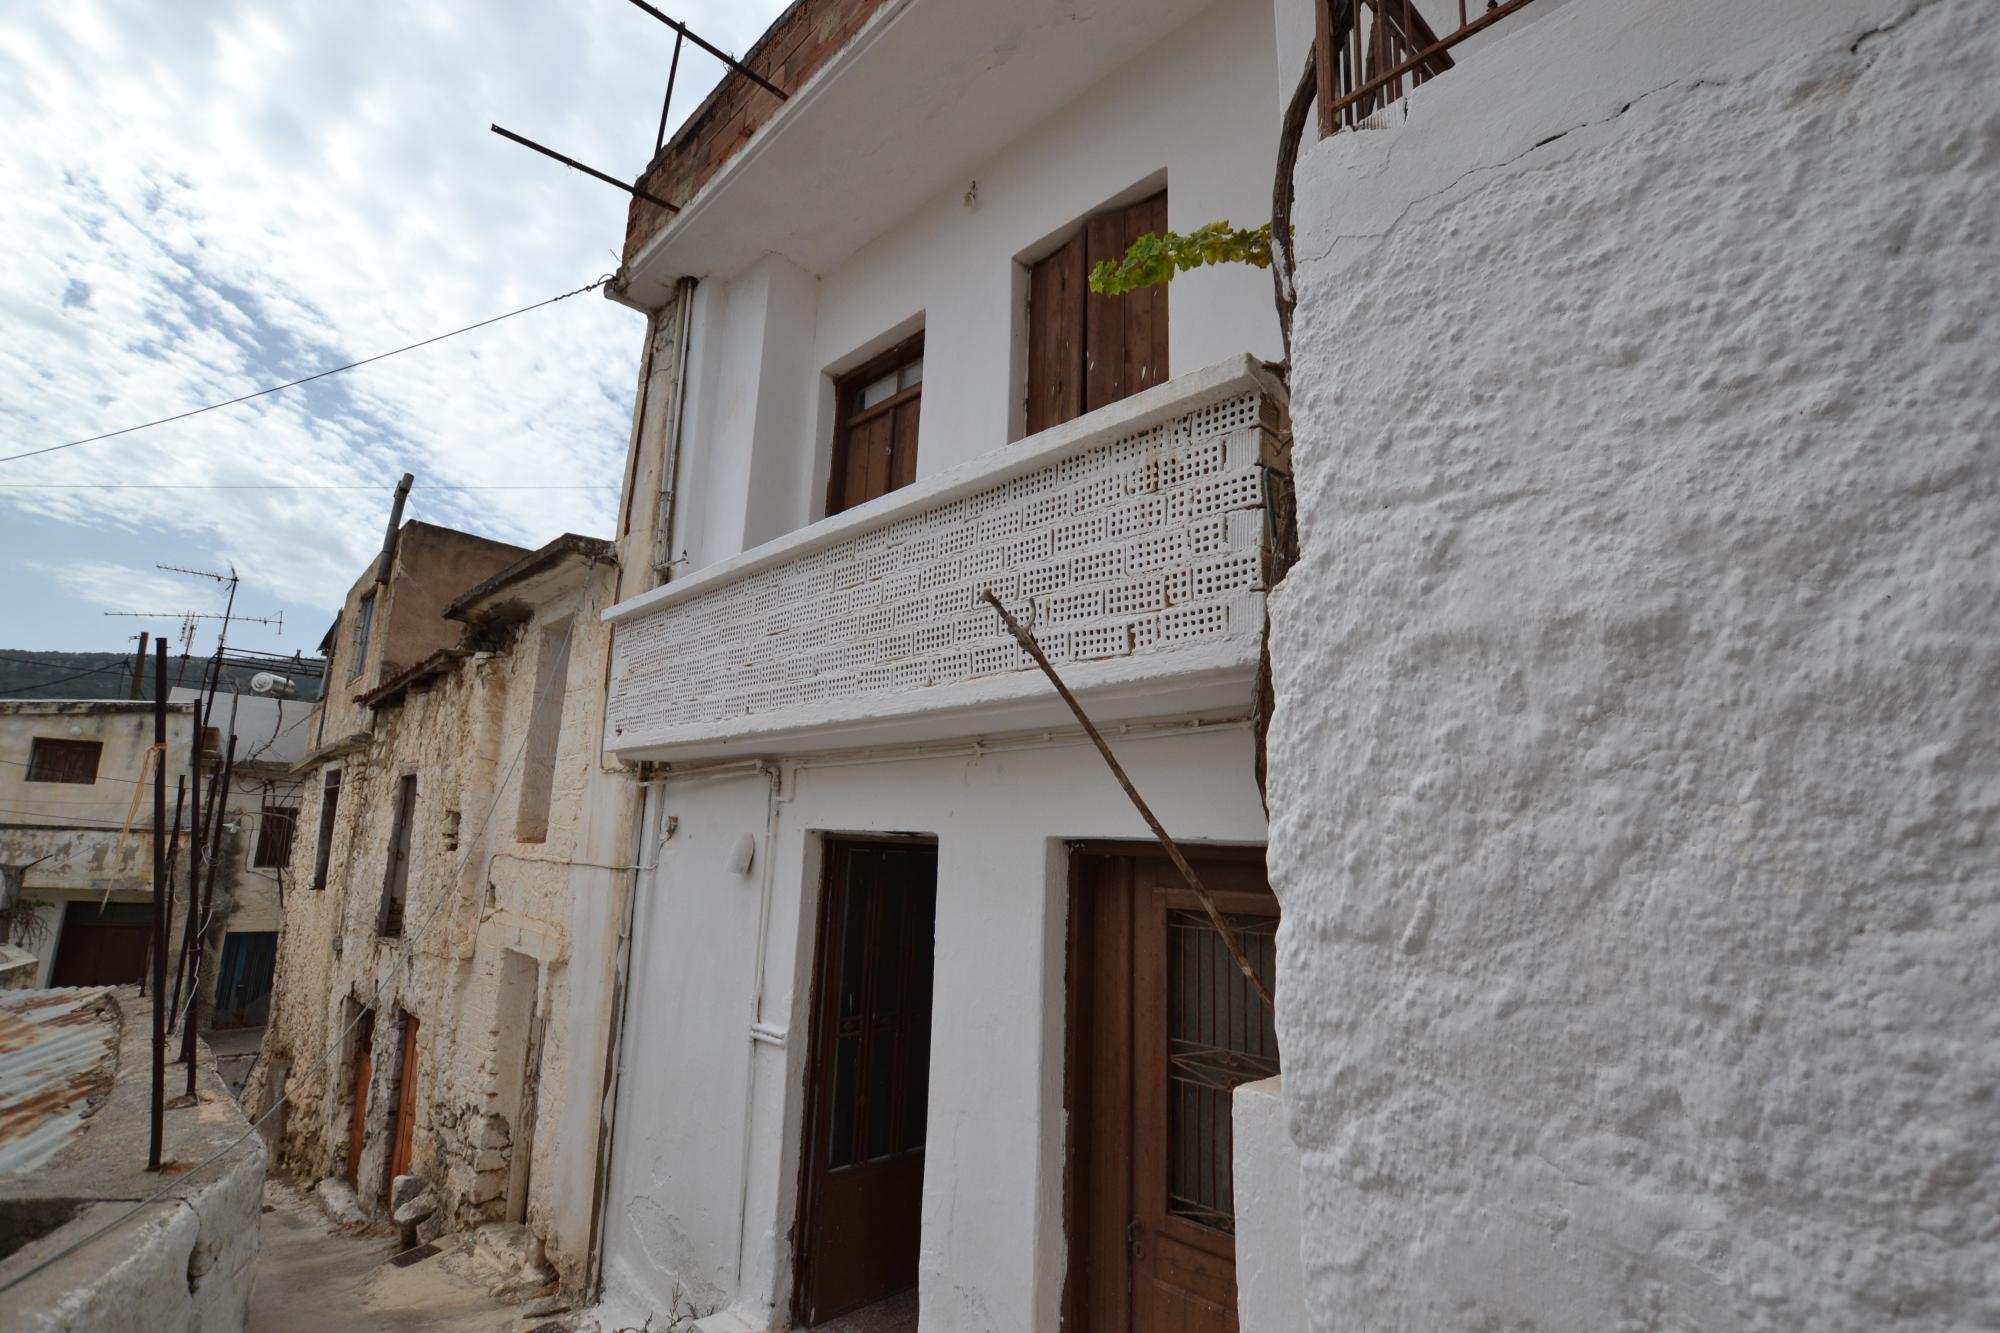 House for renovation with good views and roof terrace. Krtsa.